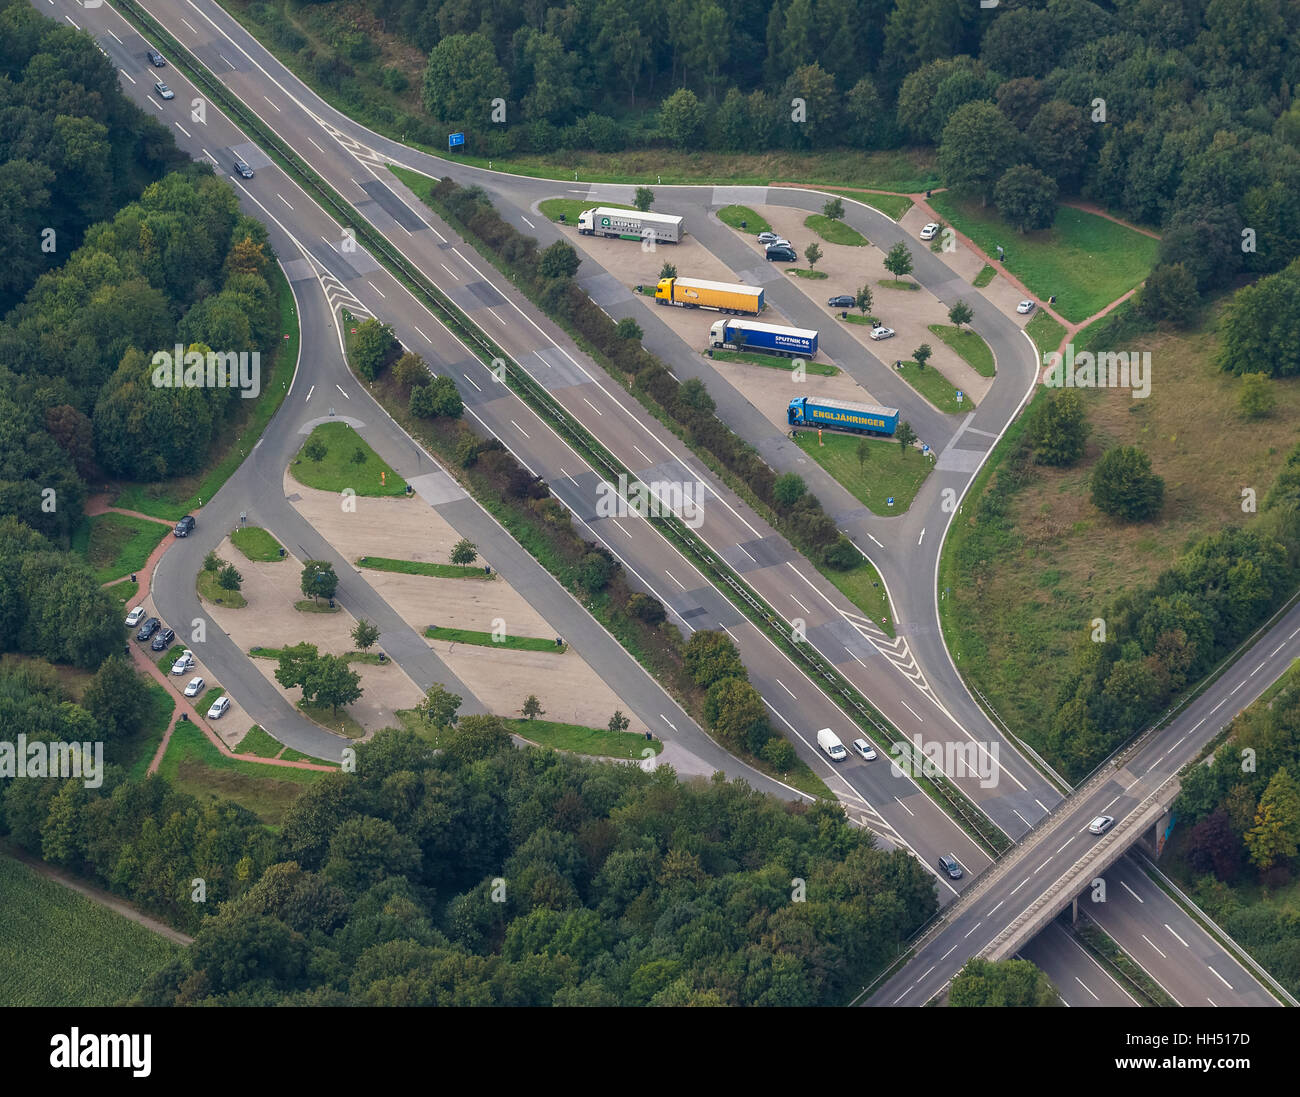 rest area, A57, truck rest periods, city limits Kamp-Lintfort, belongs to the town of Alpen, Niederrhein, Germany, - Stock Image